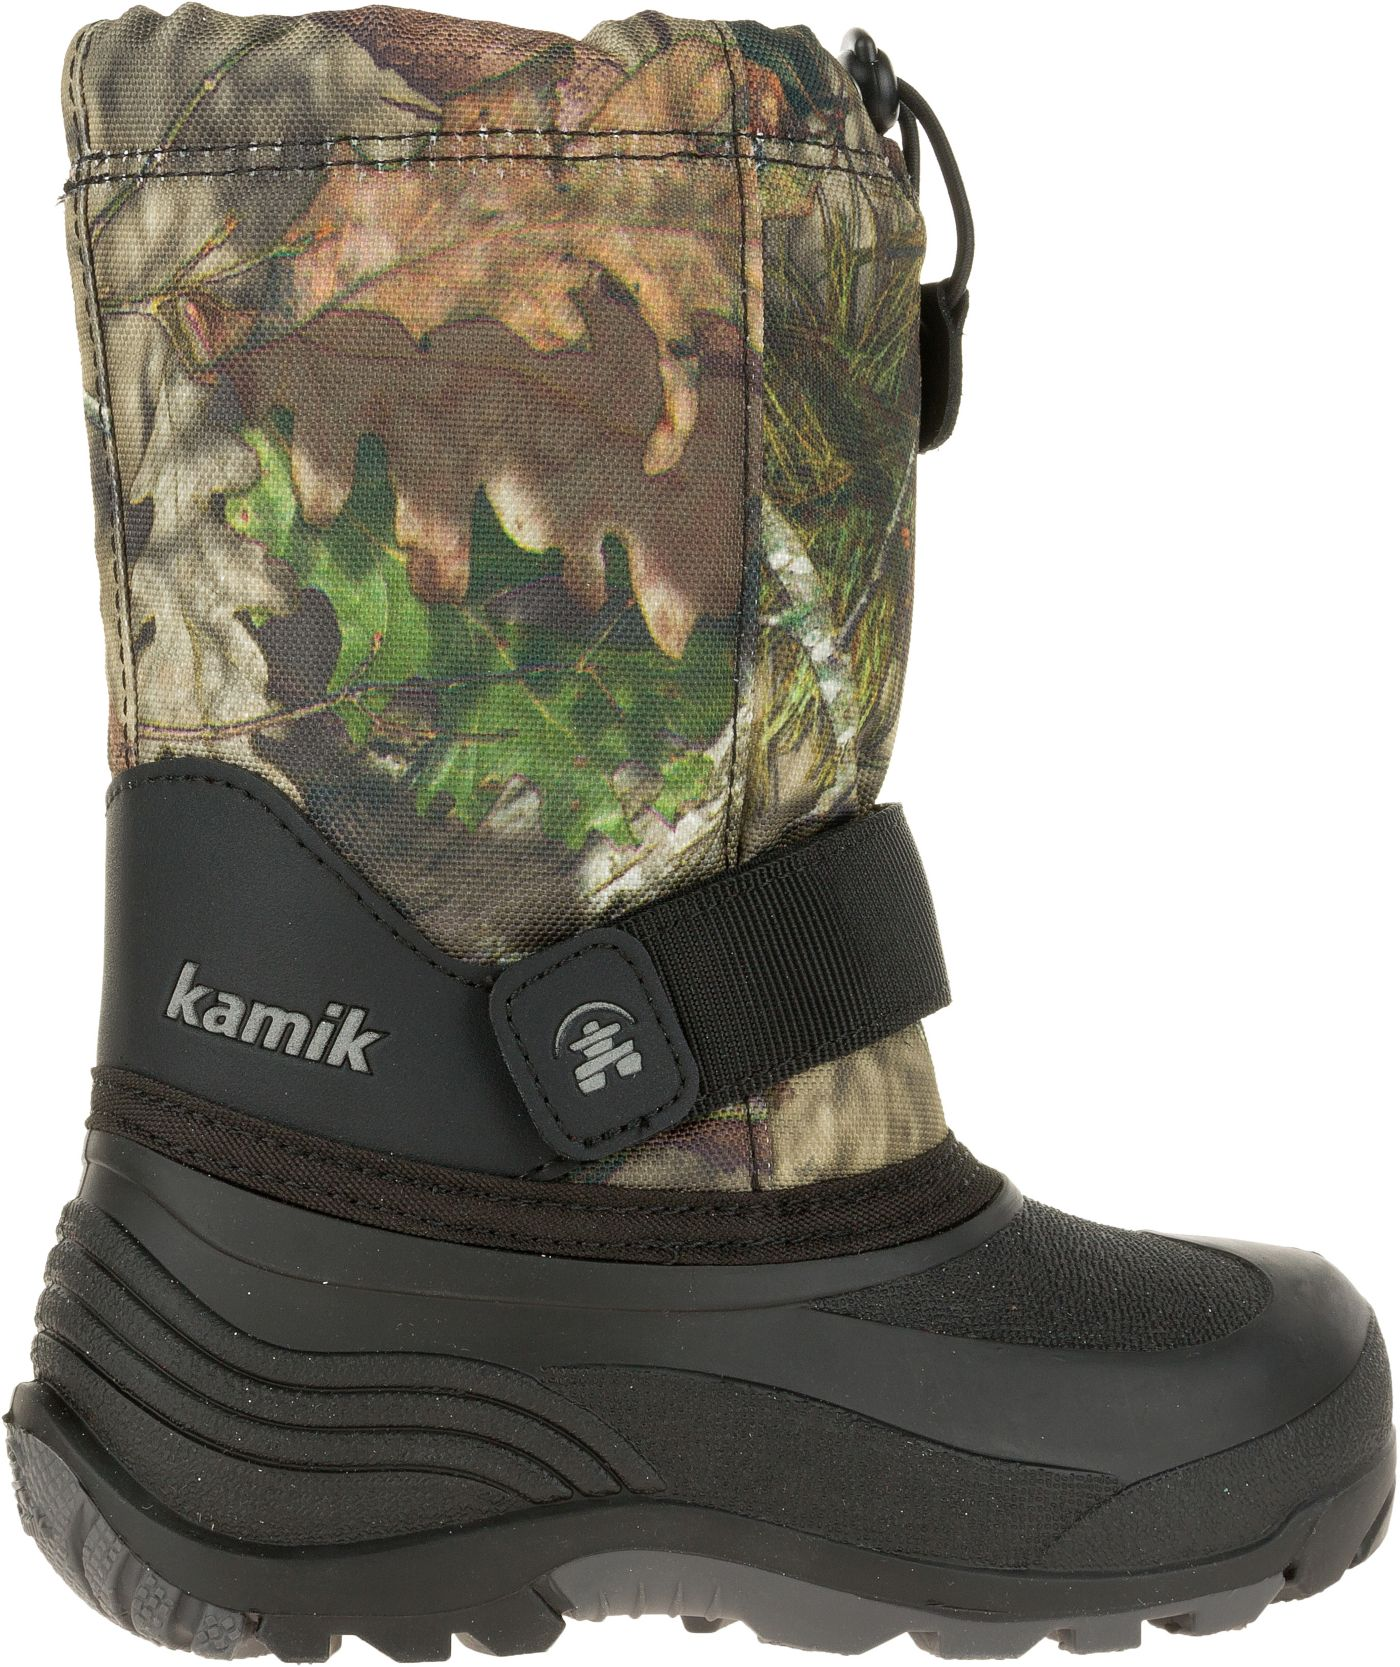 Kamik Kids' Rocket Mossy Oak Country Insulated Winter Boots